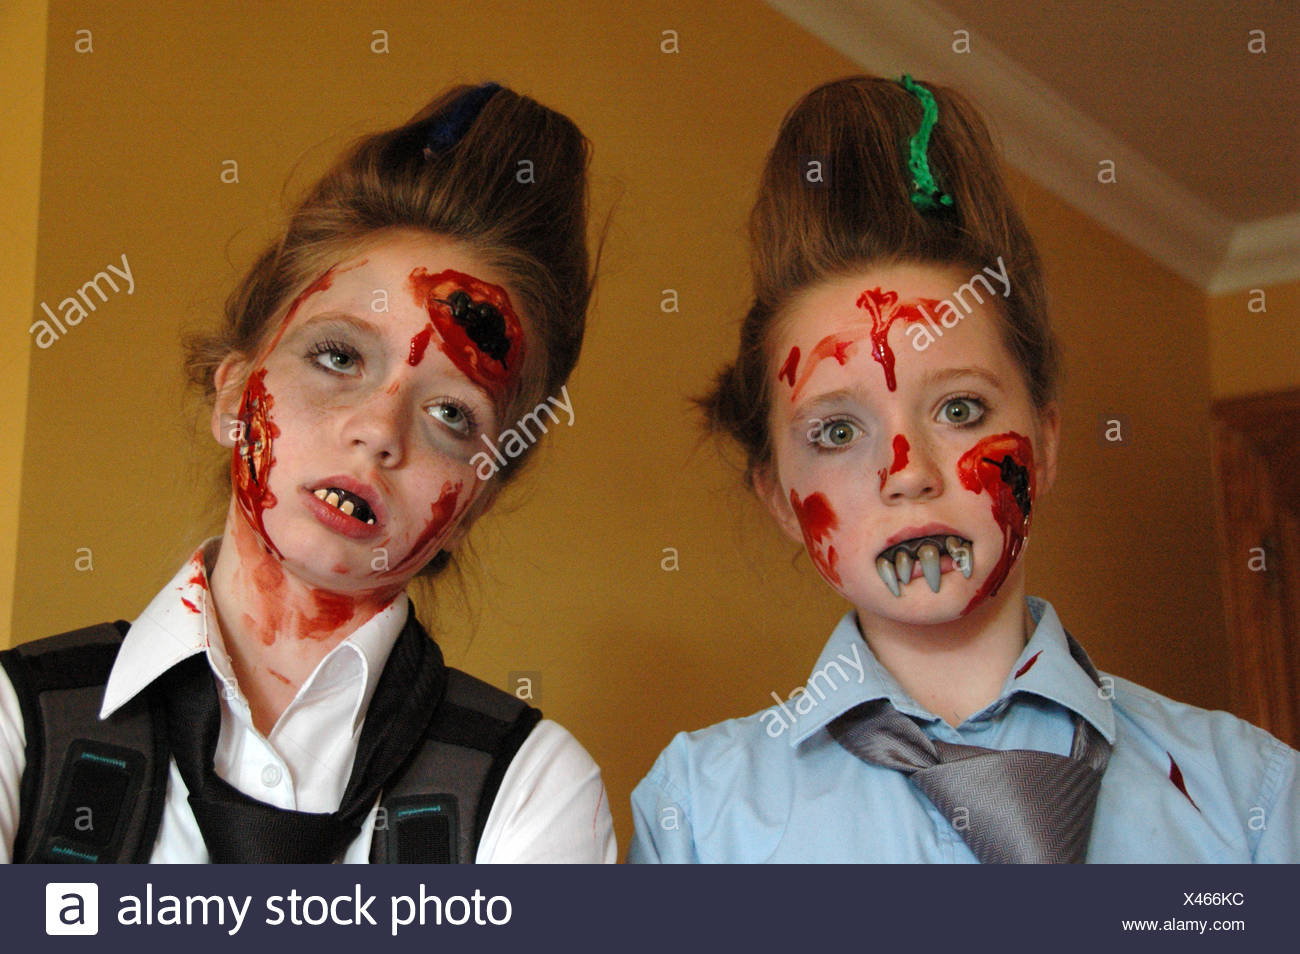 Two Teenage Girls With Painted Faces - Stock Image